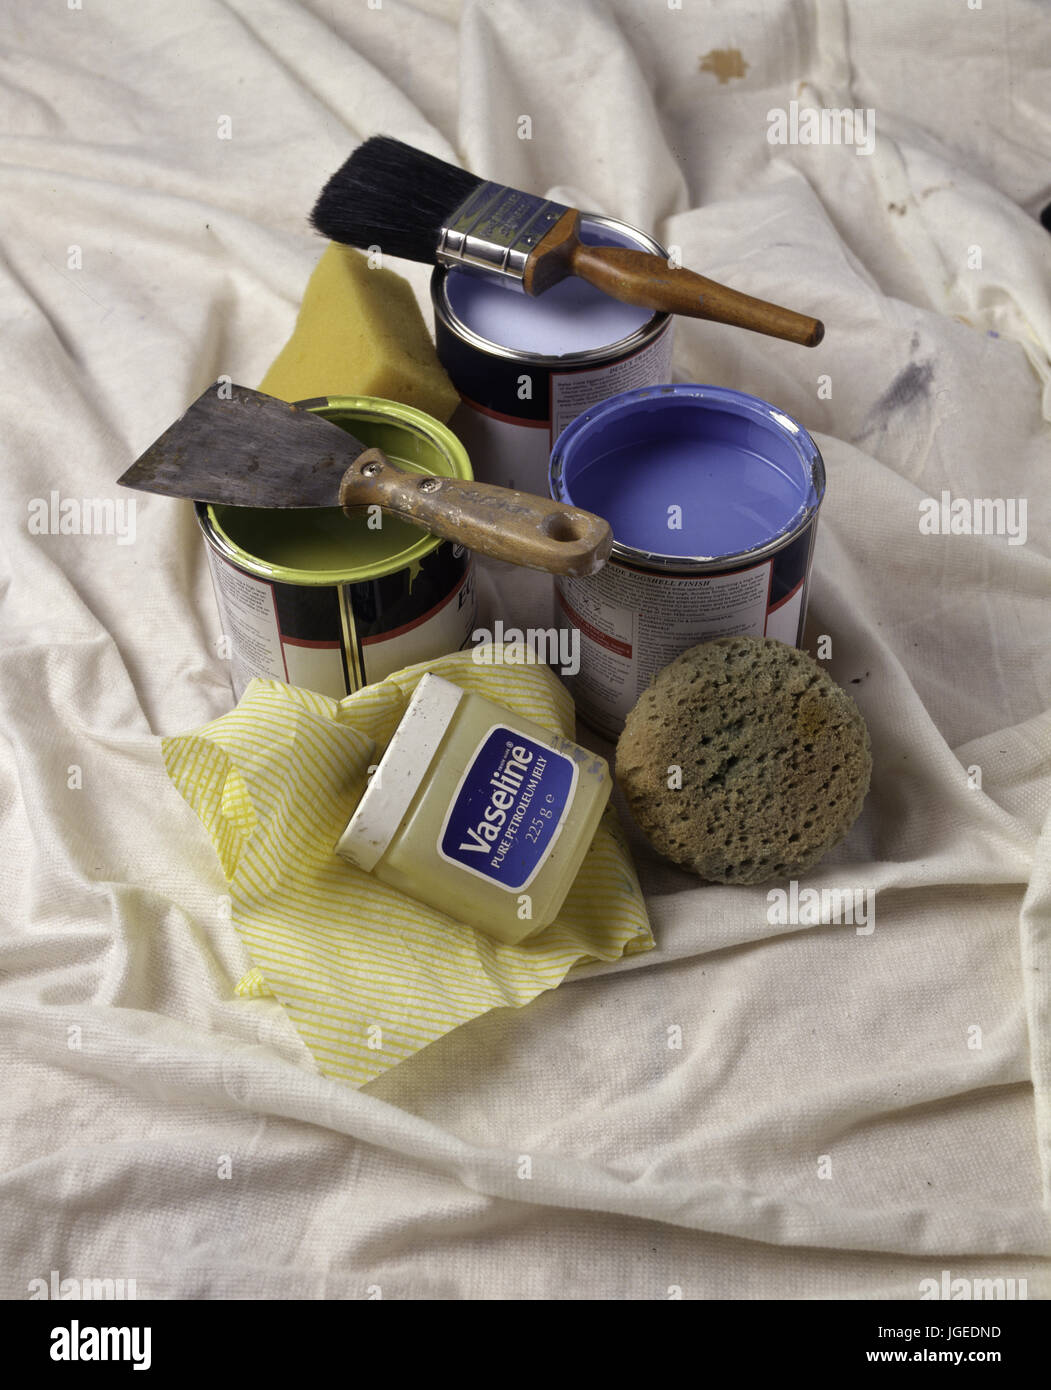 Tins of blue and green paint sith paint brushes Stock Photo